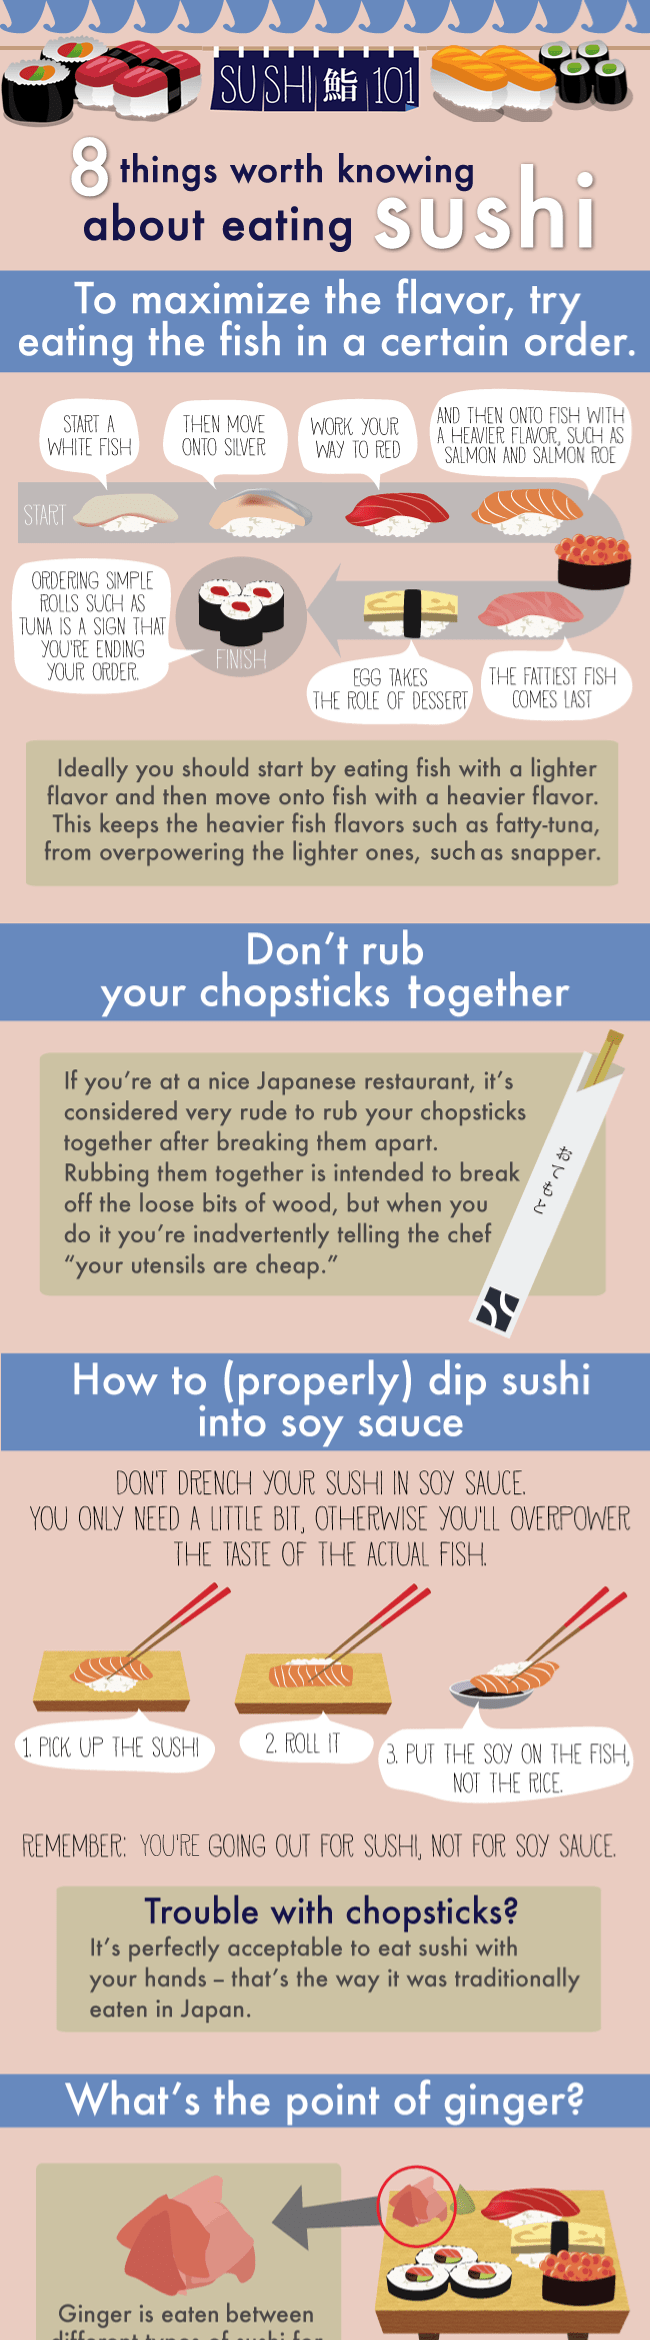 8 things to know about sushi